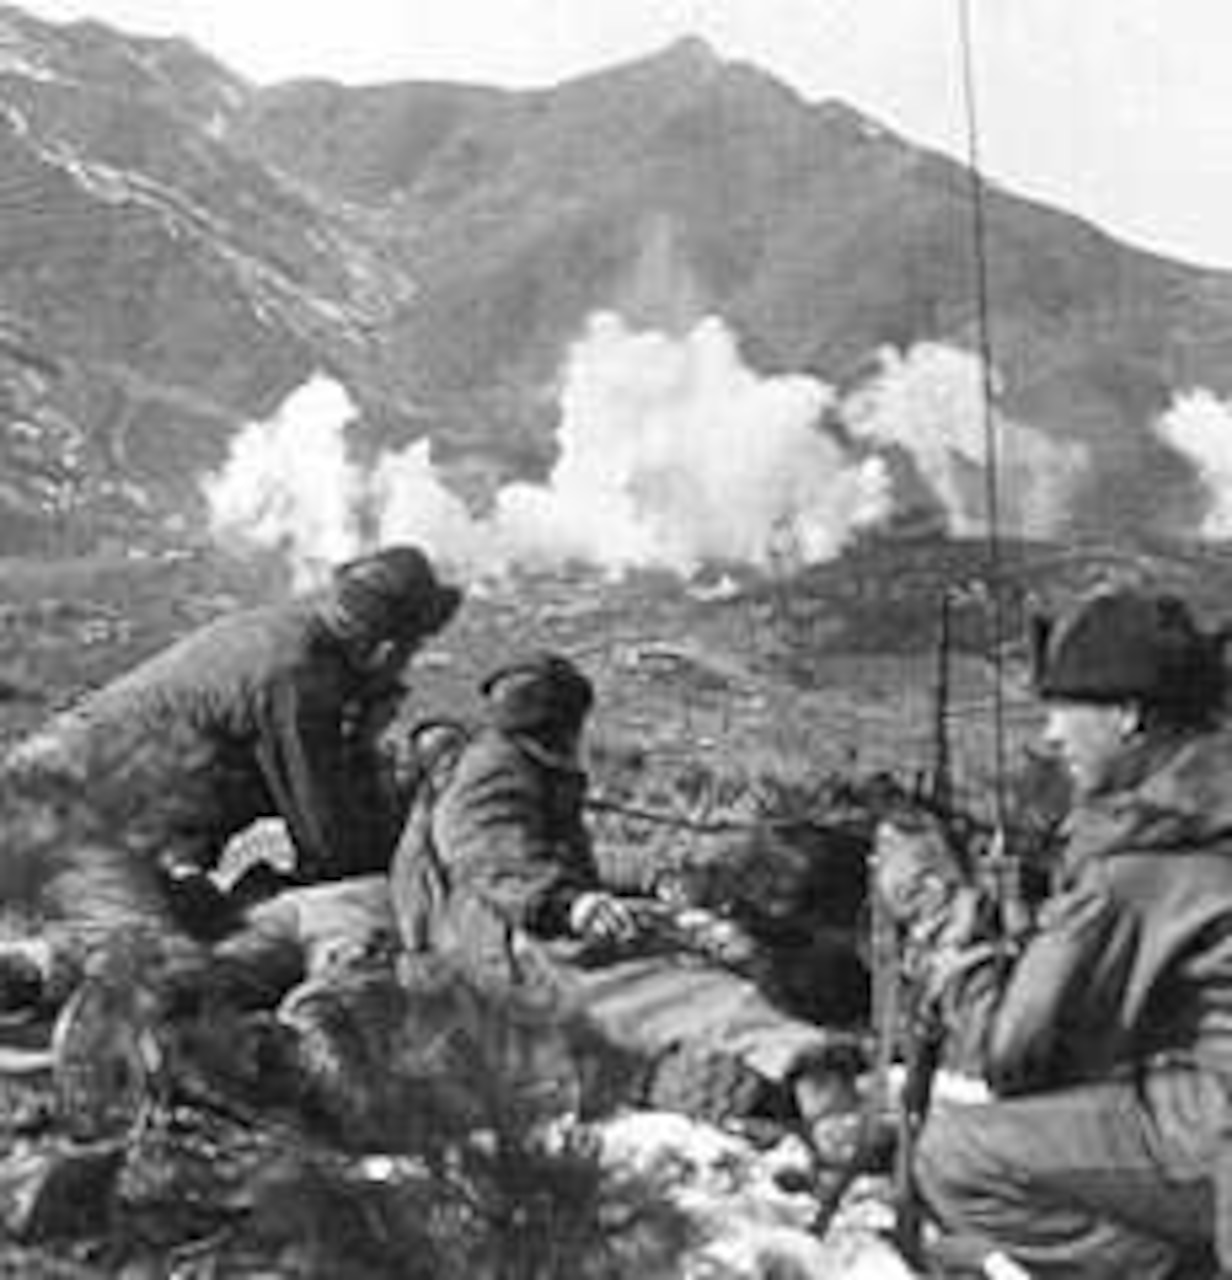 Soldiers call artillery fire onto enemy position.